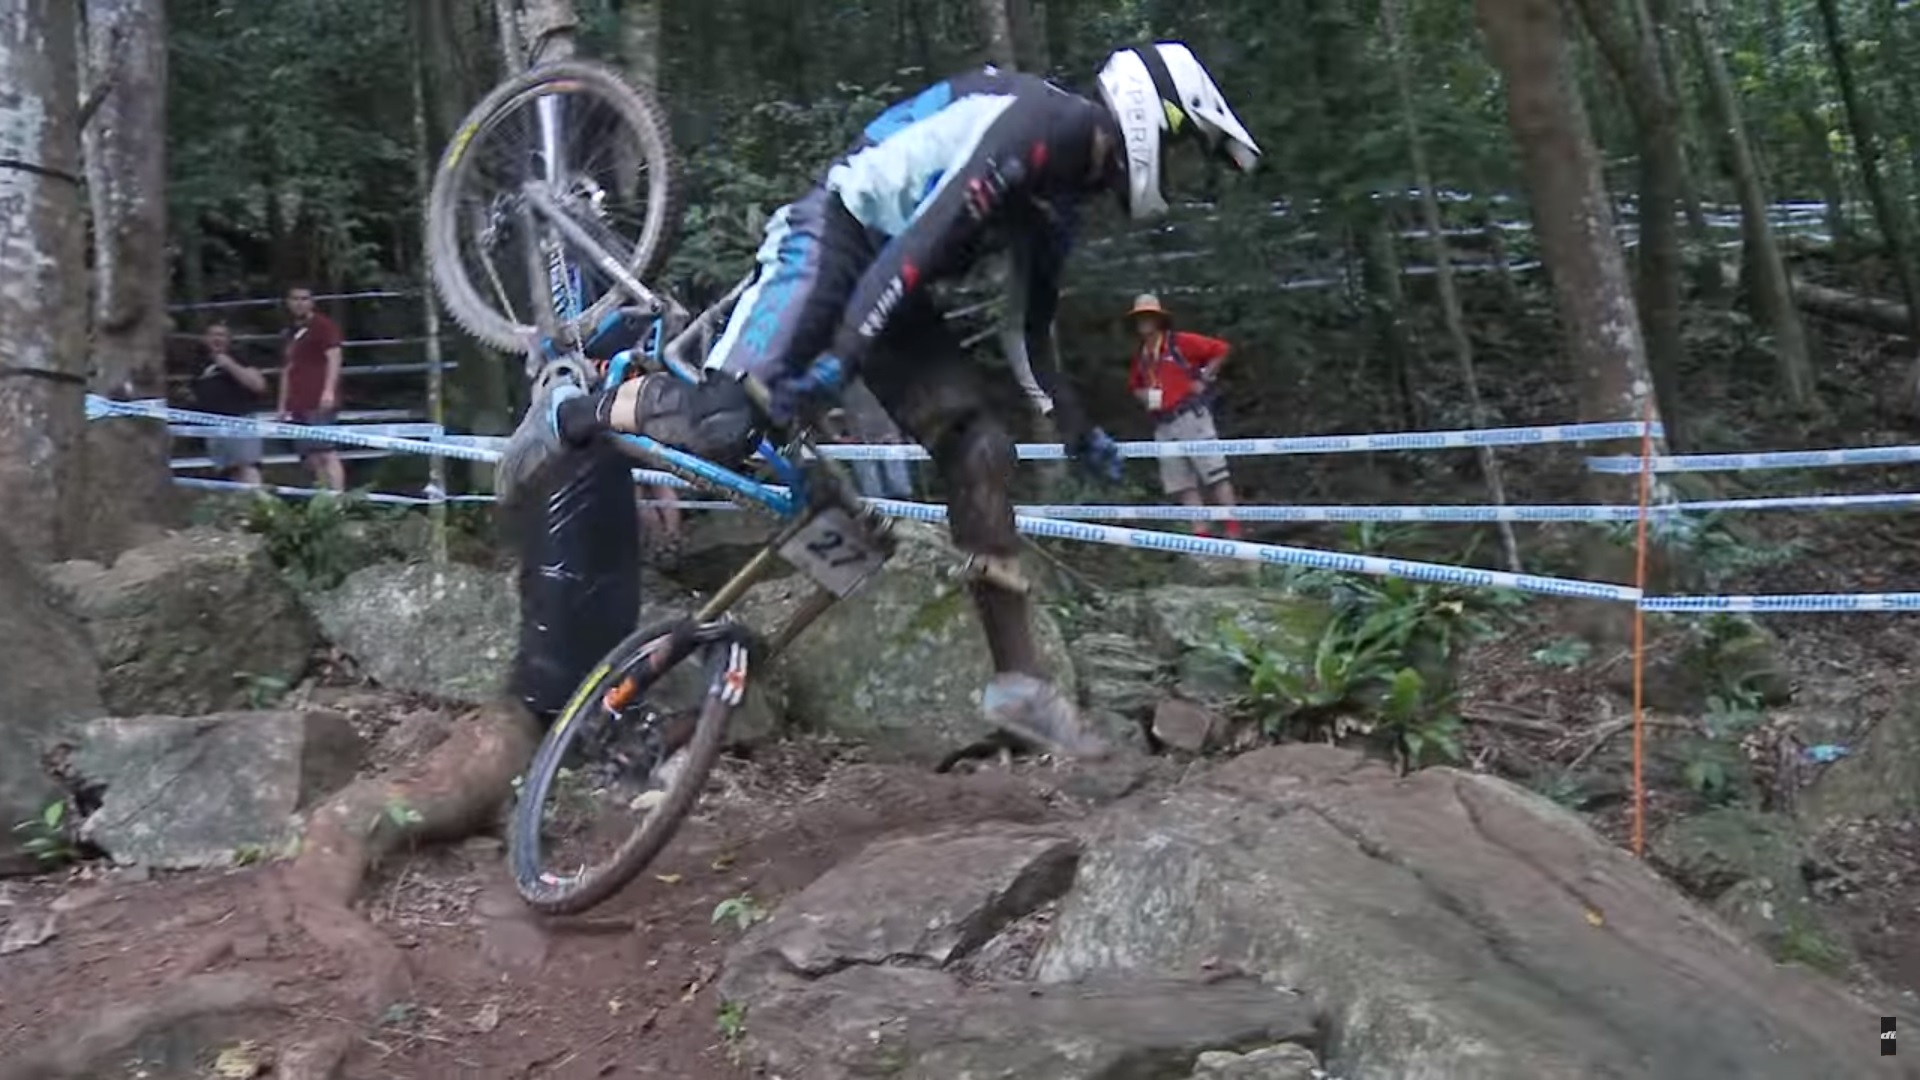 Rock Garden Chaos - Trackside at the Cairns World Cup 2016